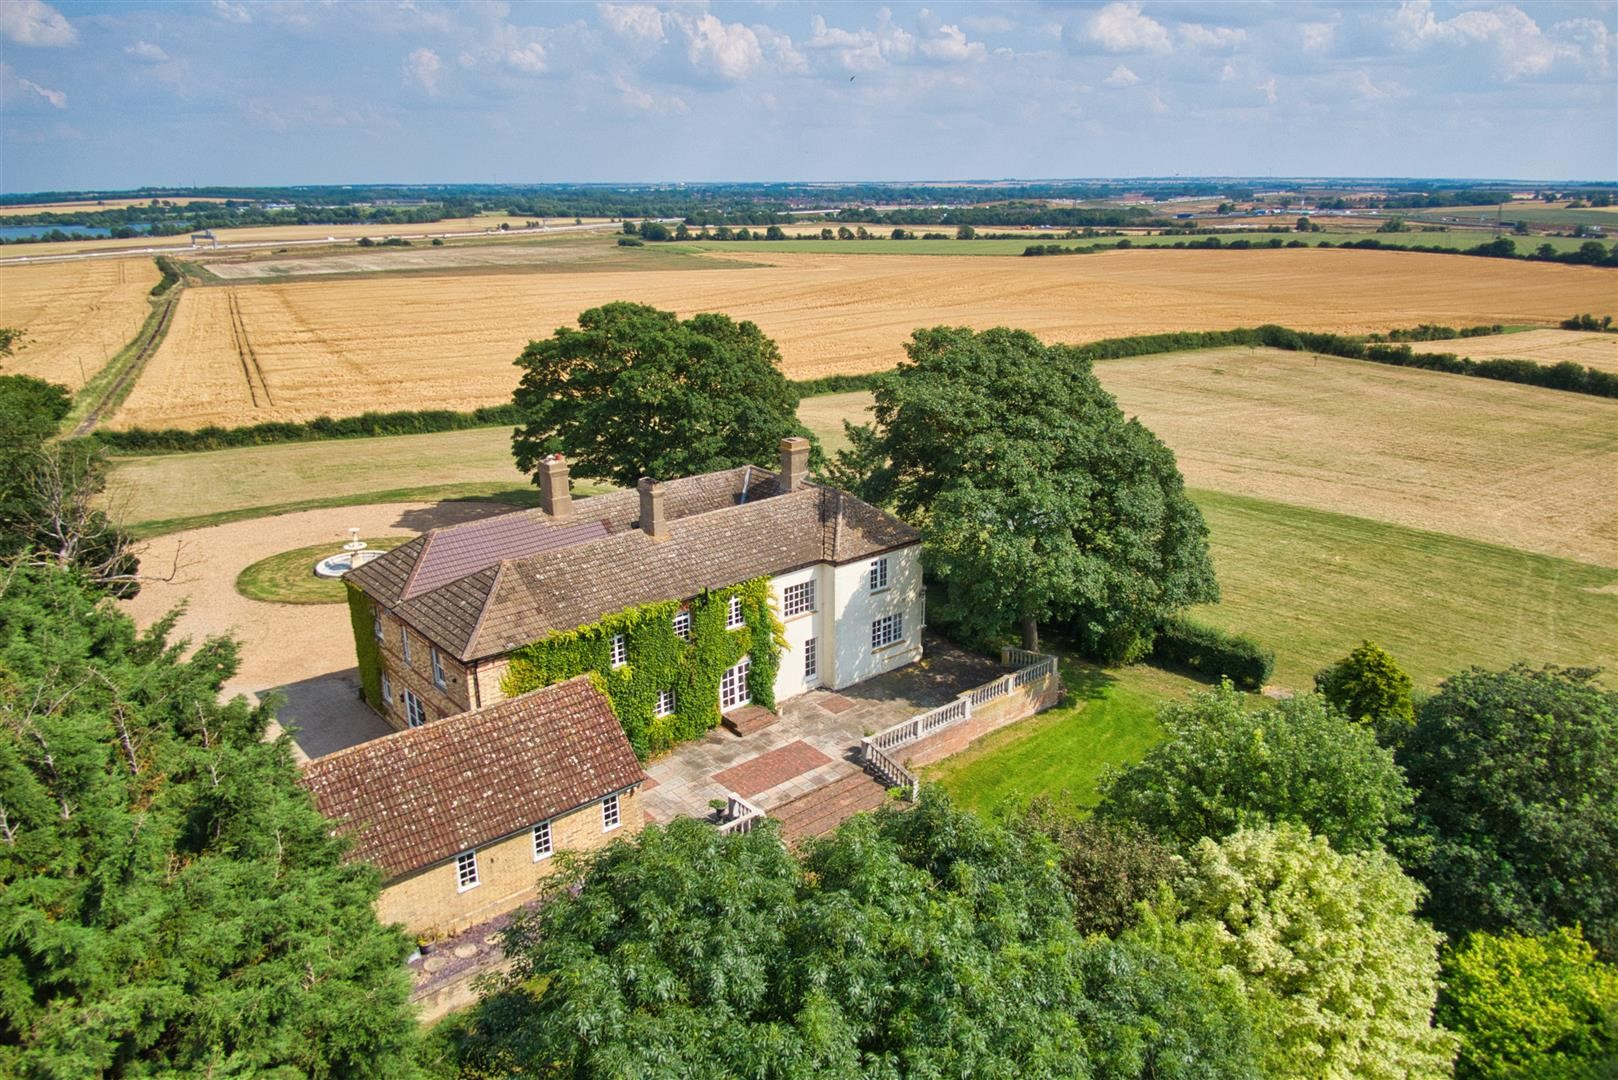 Weybridge farmhouse Cambridgeshire countryside birds eye view manor